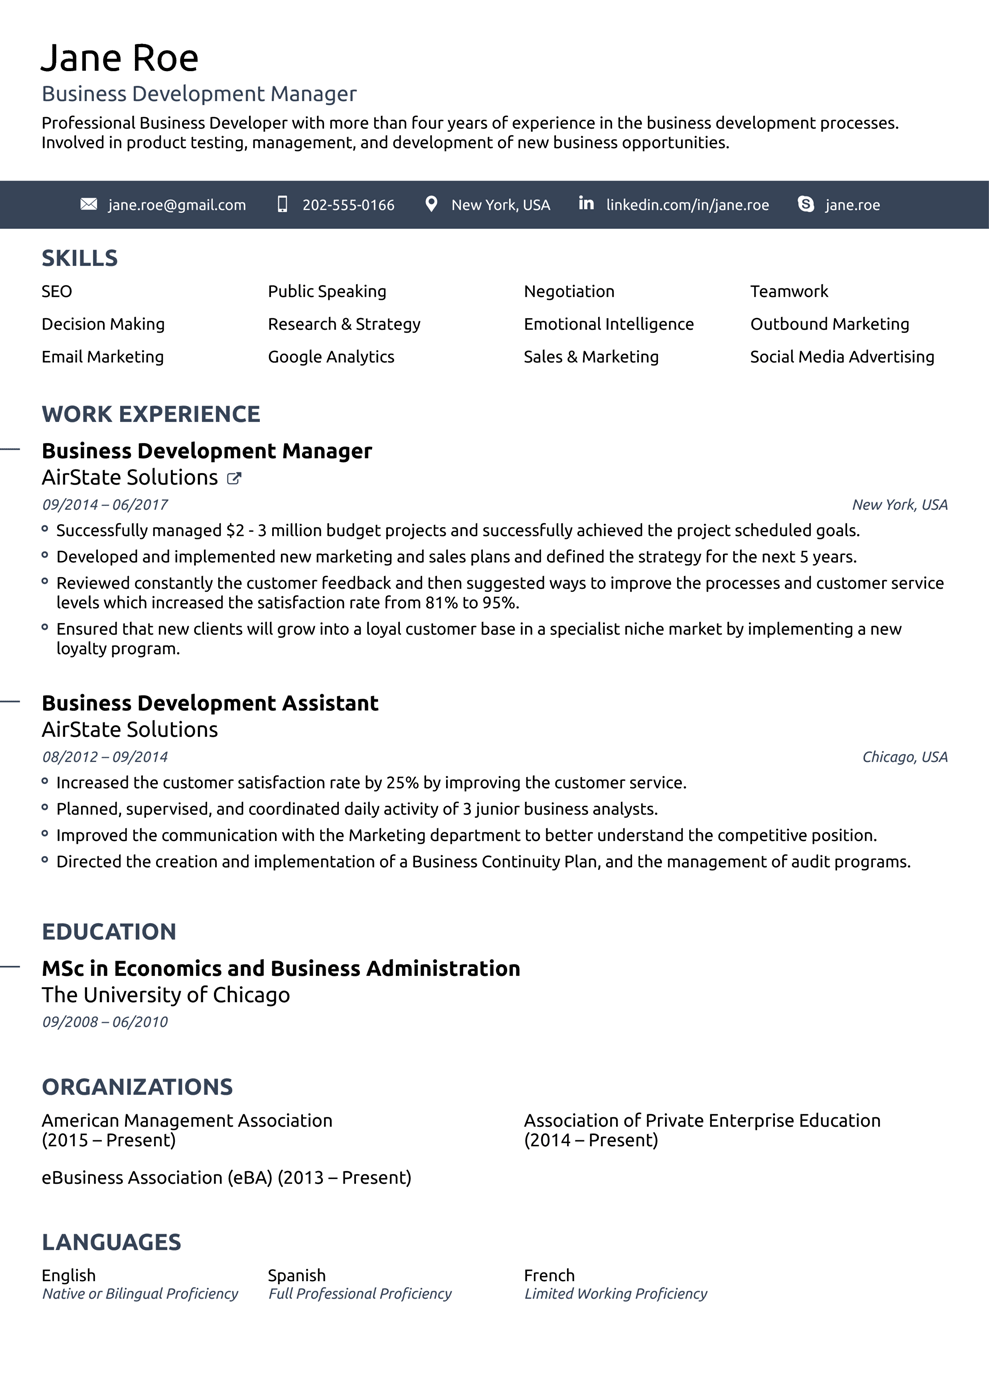 20+ One-Page Resume Templates [Free Download]